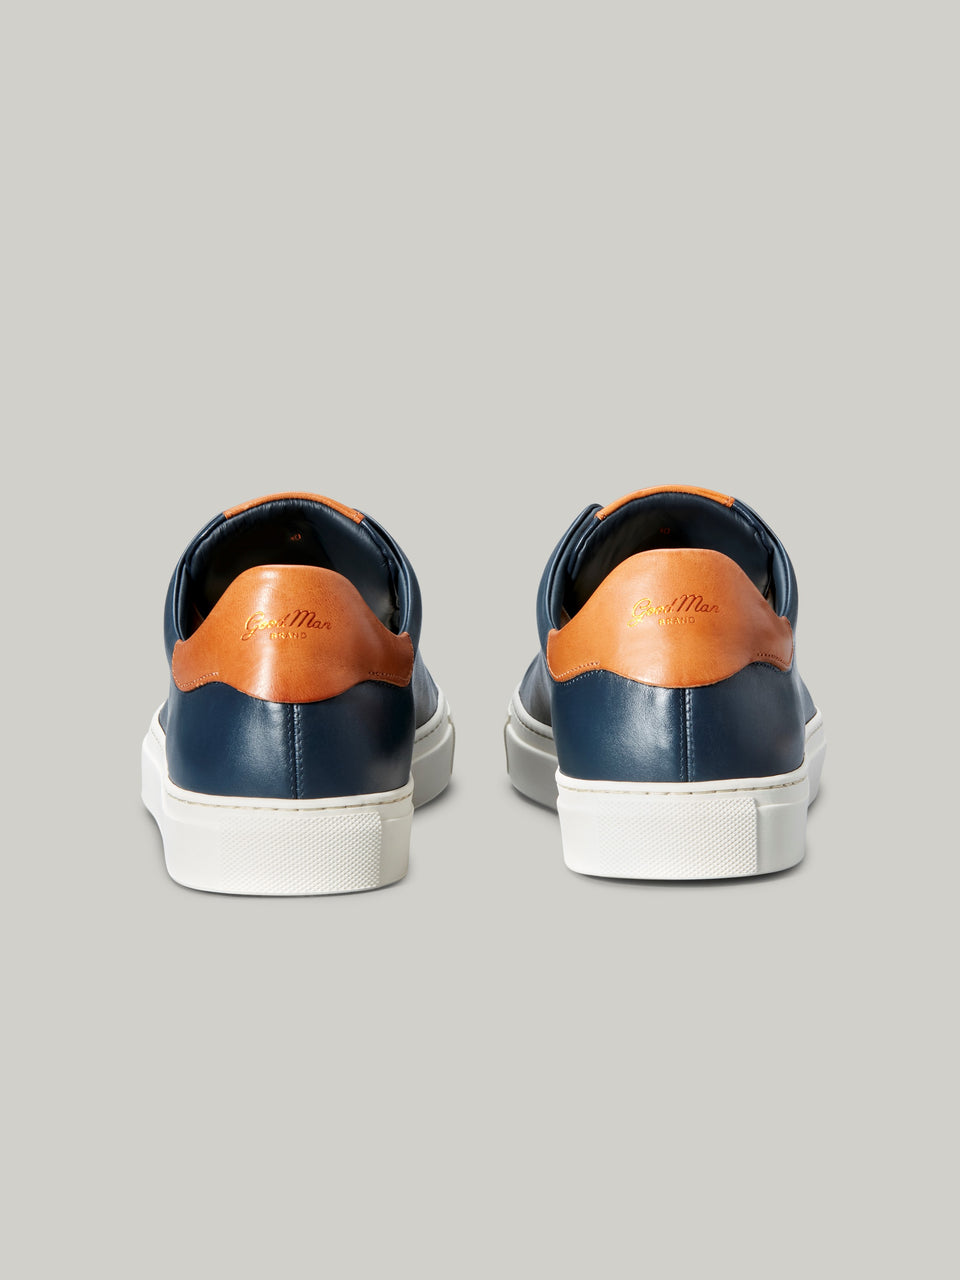 Legend Lo Top Sneaker - Navy / Vachetta - Good Man Brand - Legend Lo Top Sneaker - Navy / Vachetta